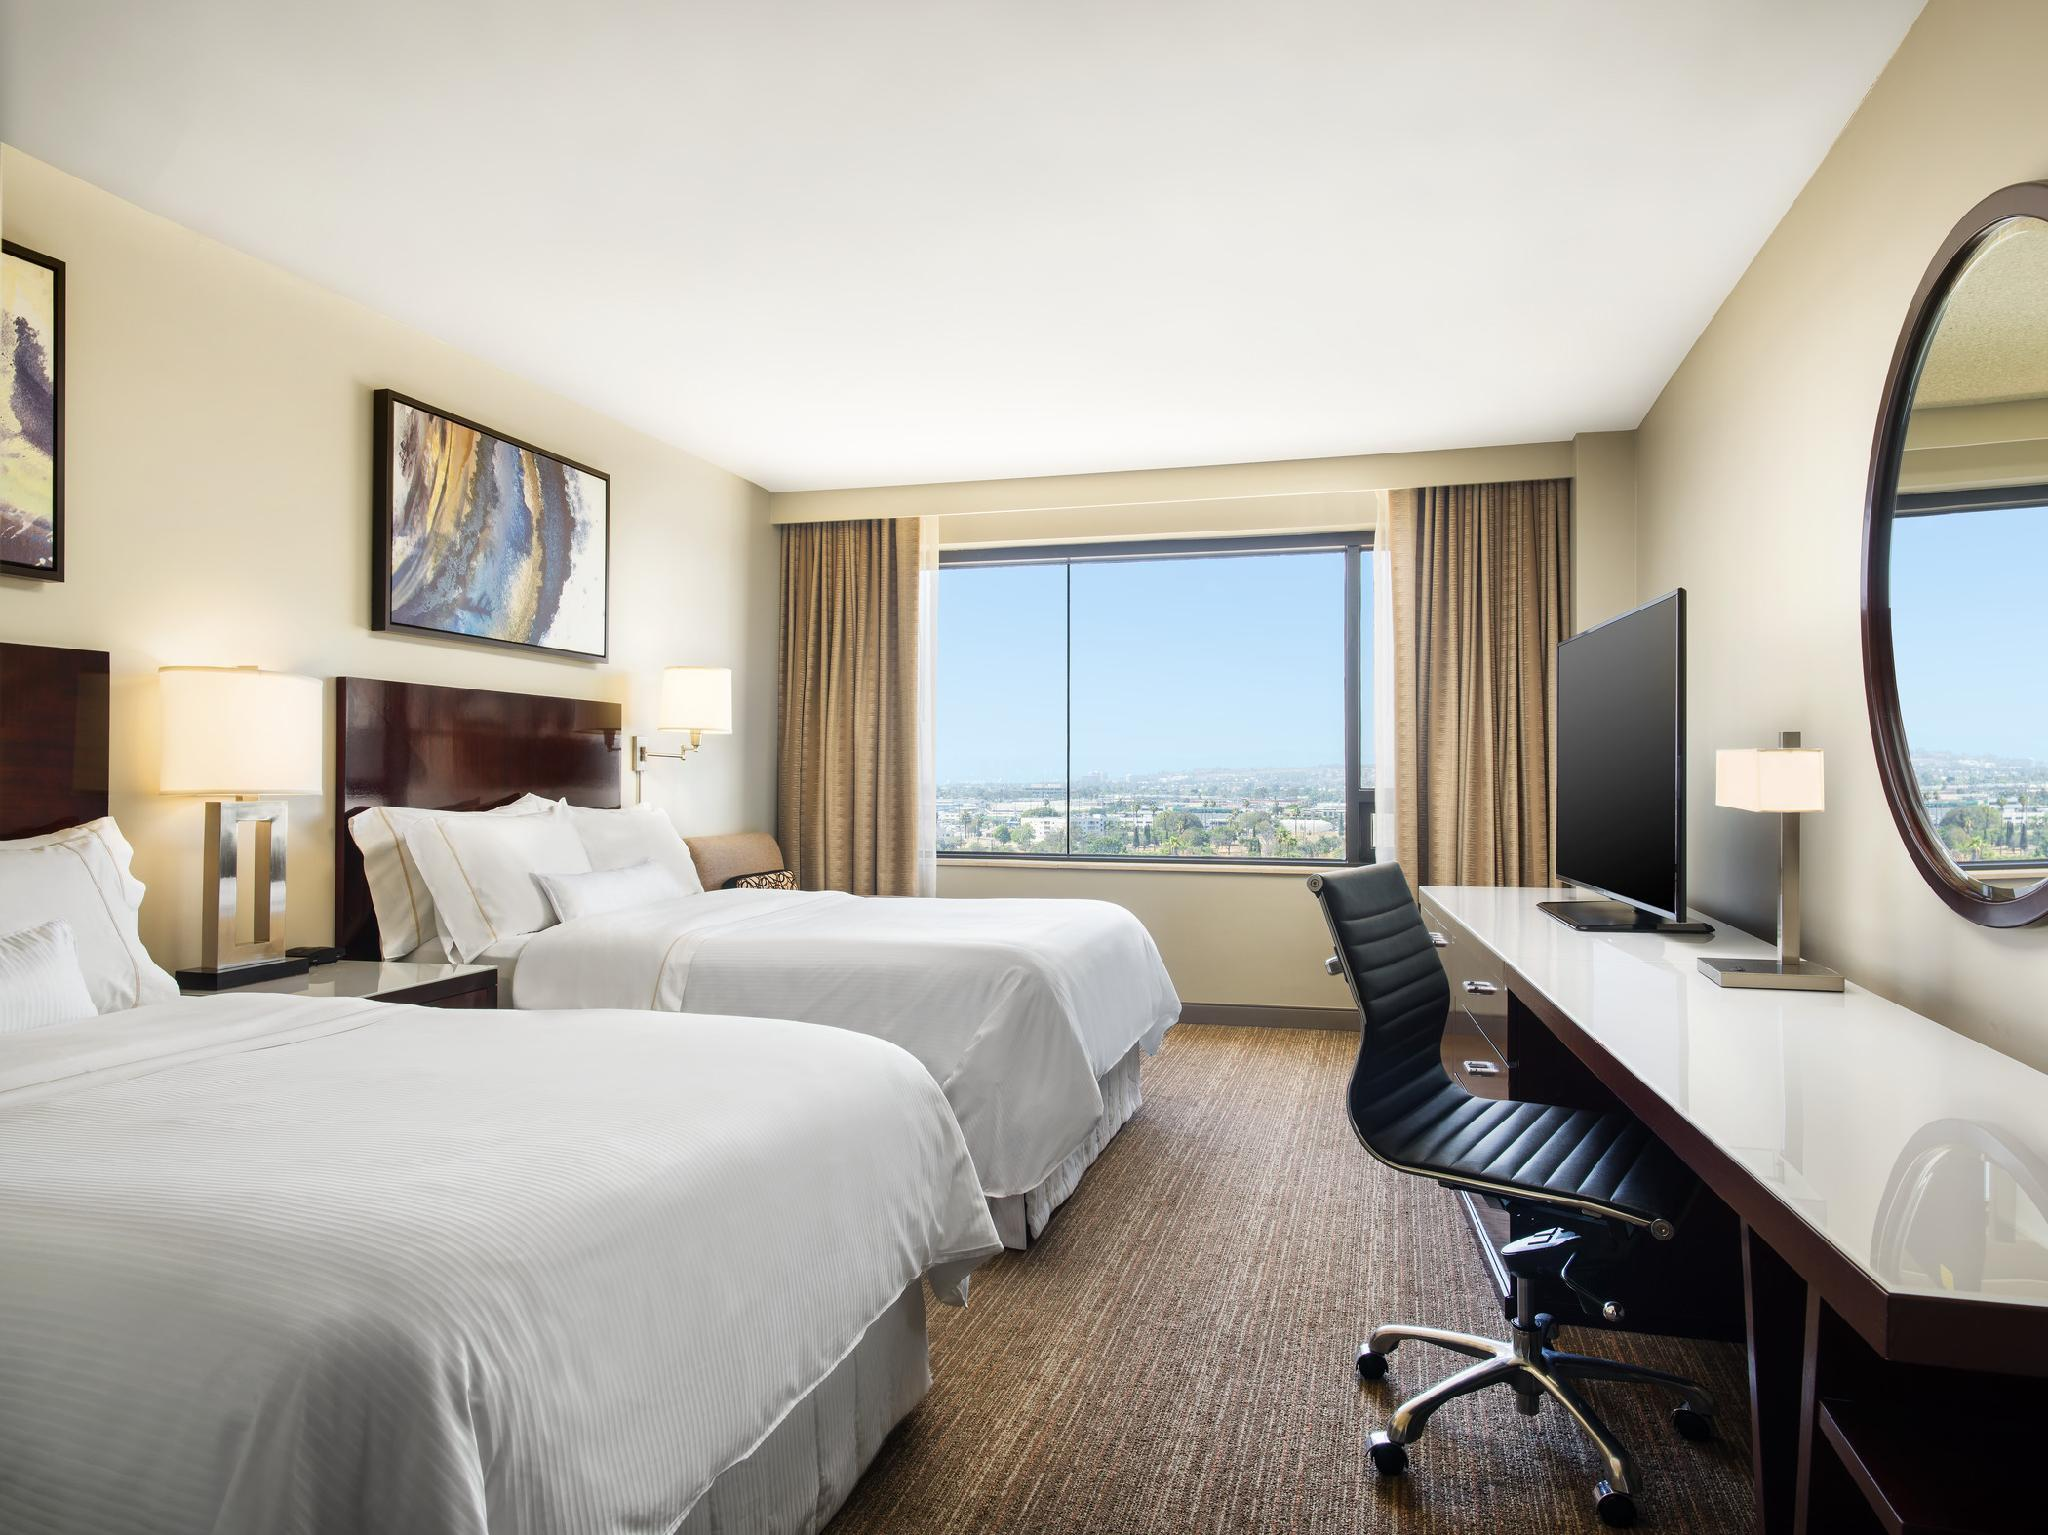 Executive, Executive lounge access, Guest room, 2 Double